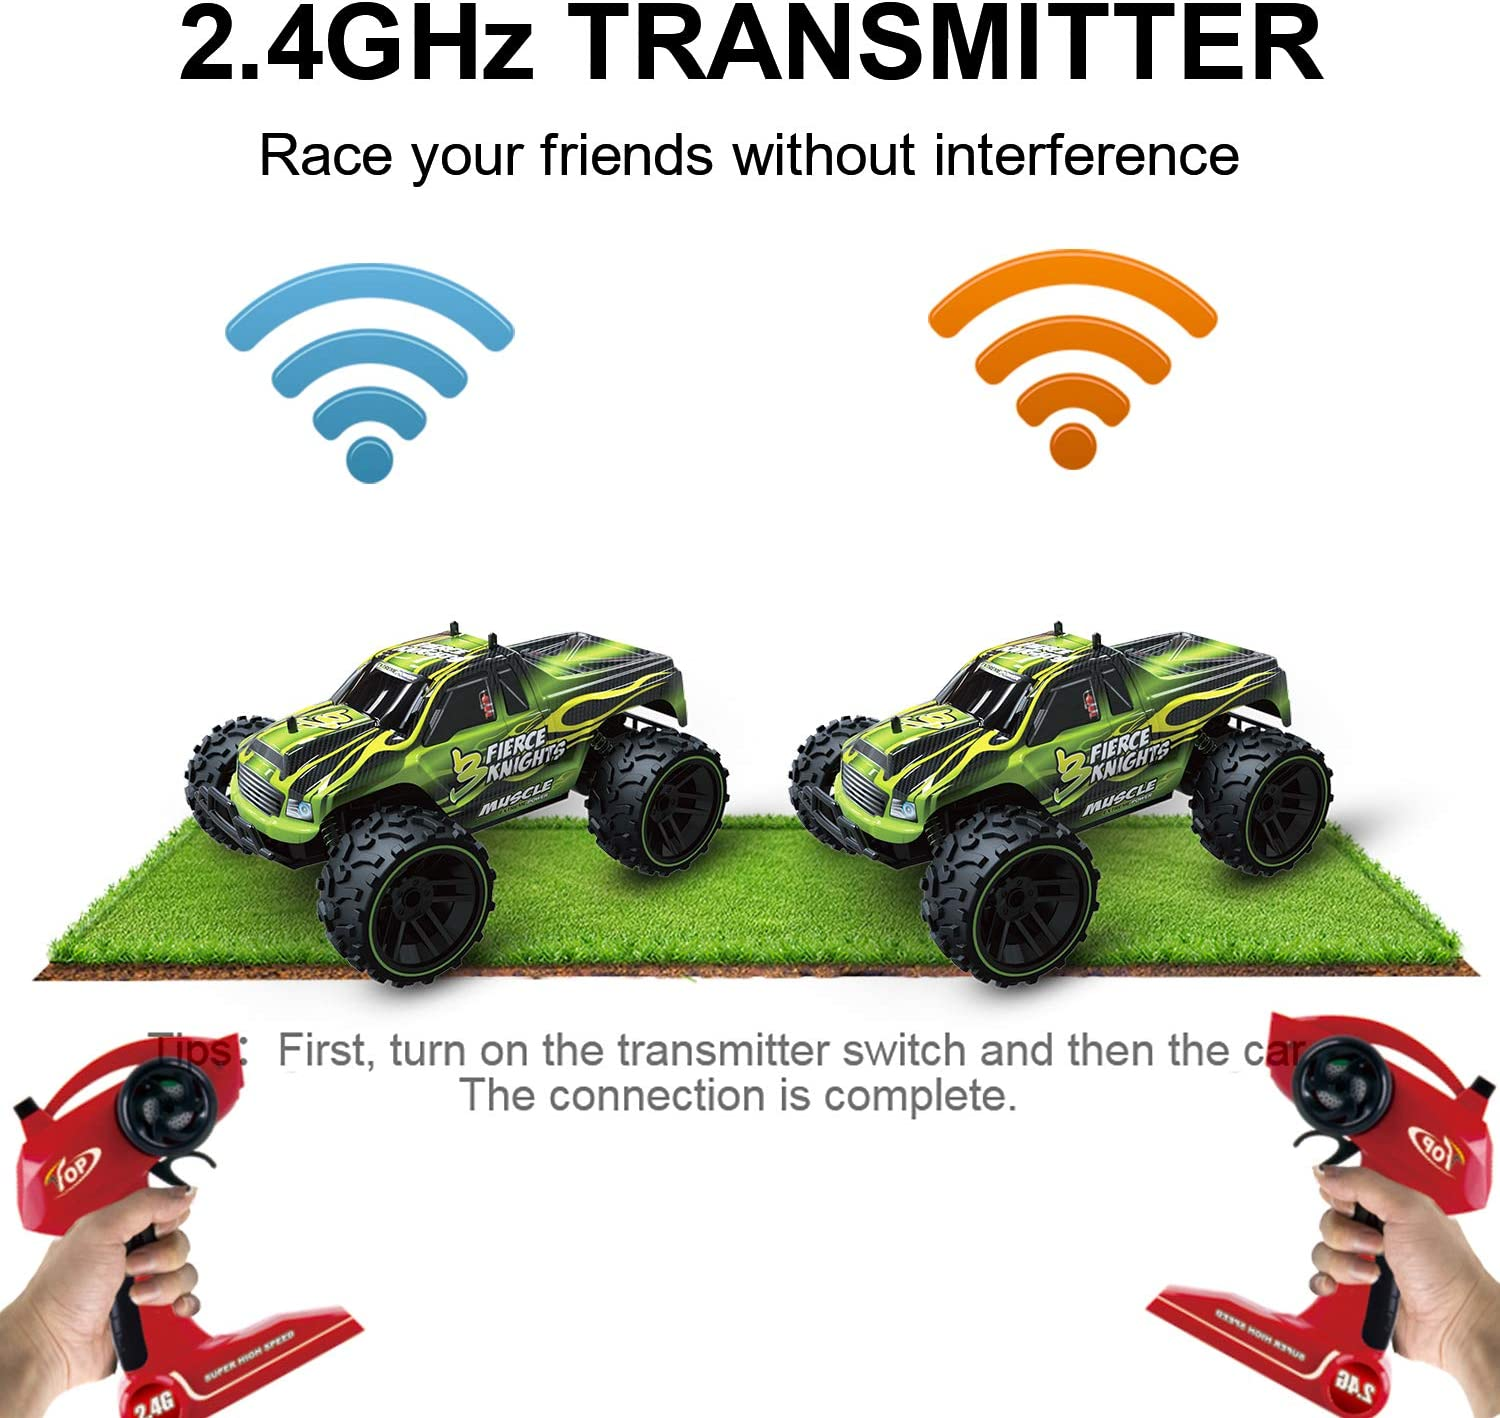 Jelly Play RC Car Remote Control Car,1:16 Scale 2WD High Speed Off Road Truck,2.4Ghz RC Buggy with 2 Rechargeable Batteries for 40 Min Play,Toy Gifts for Boys /& Girls